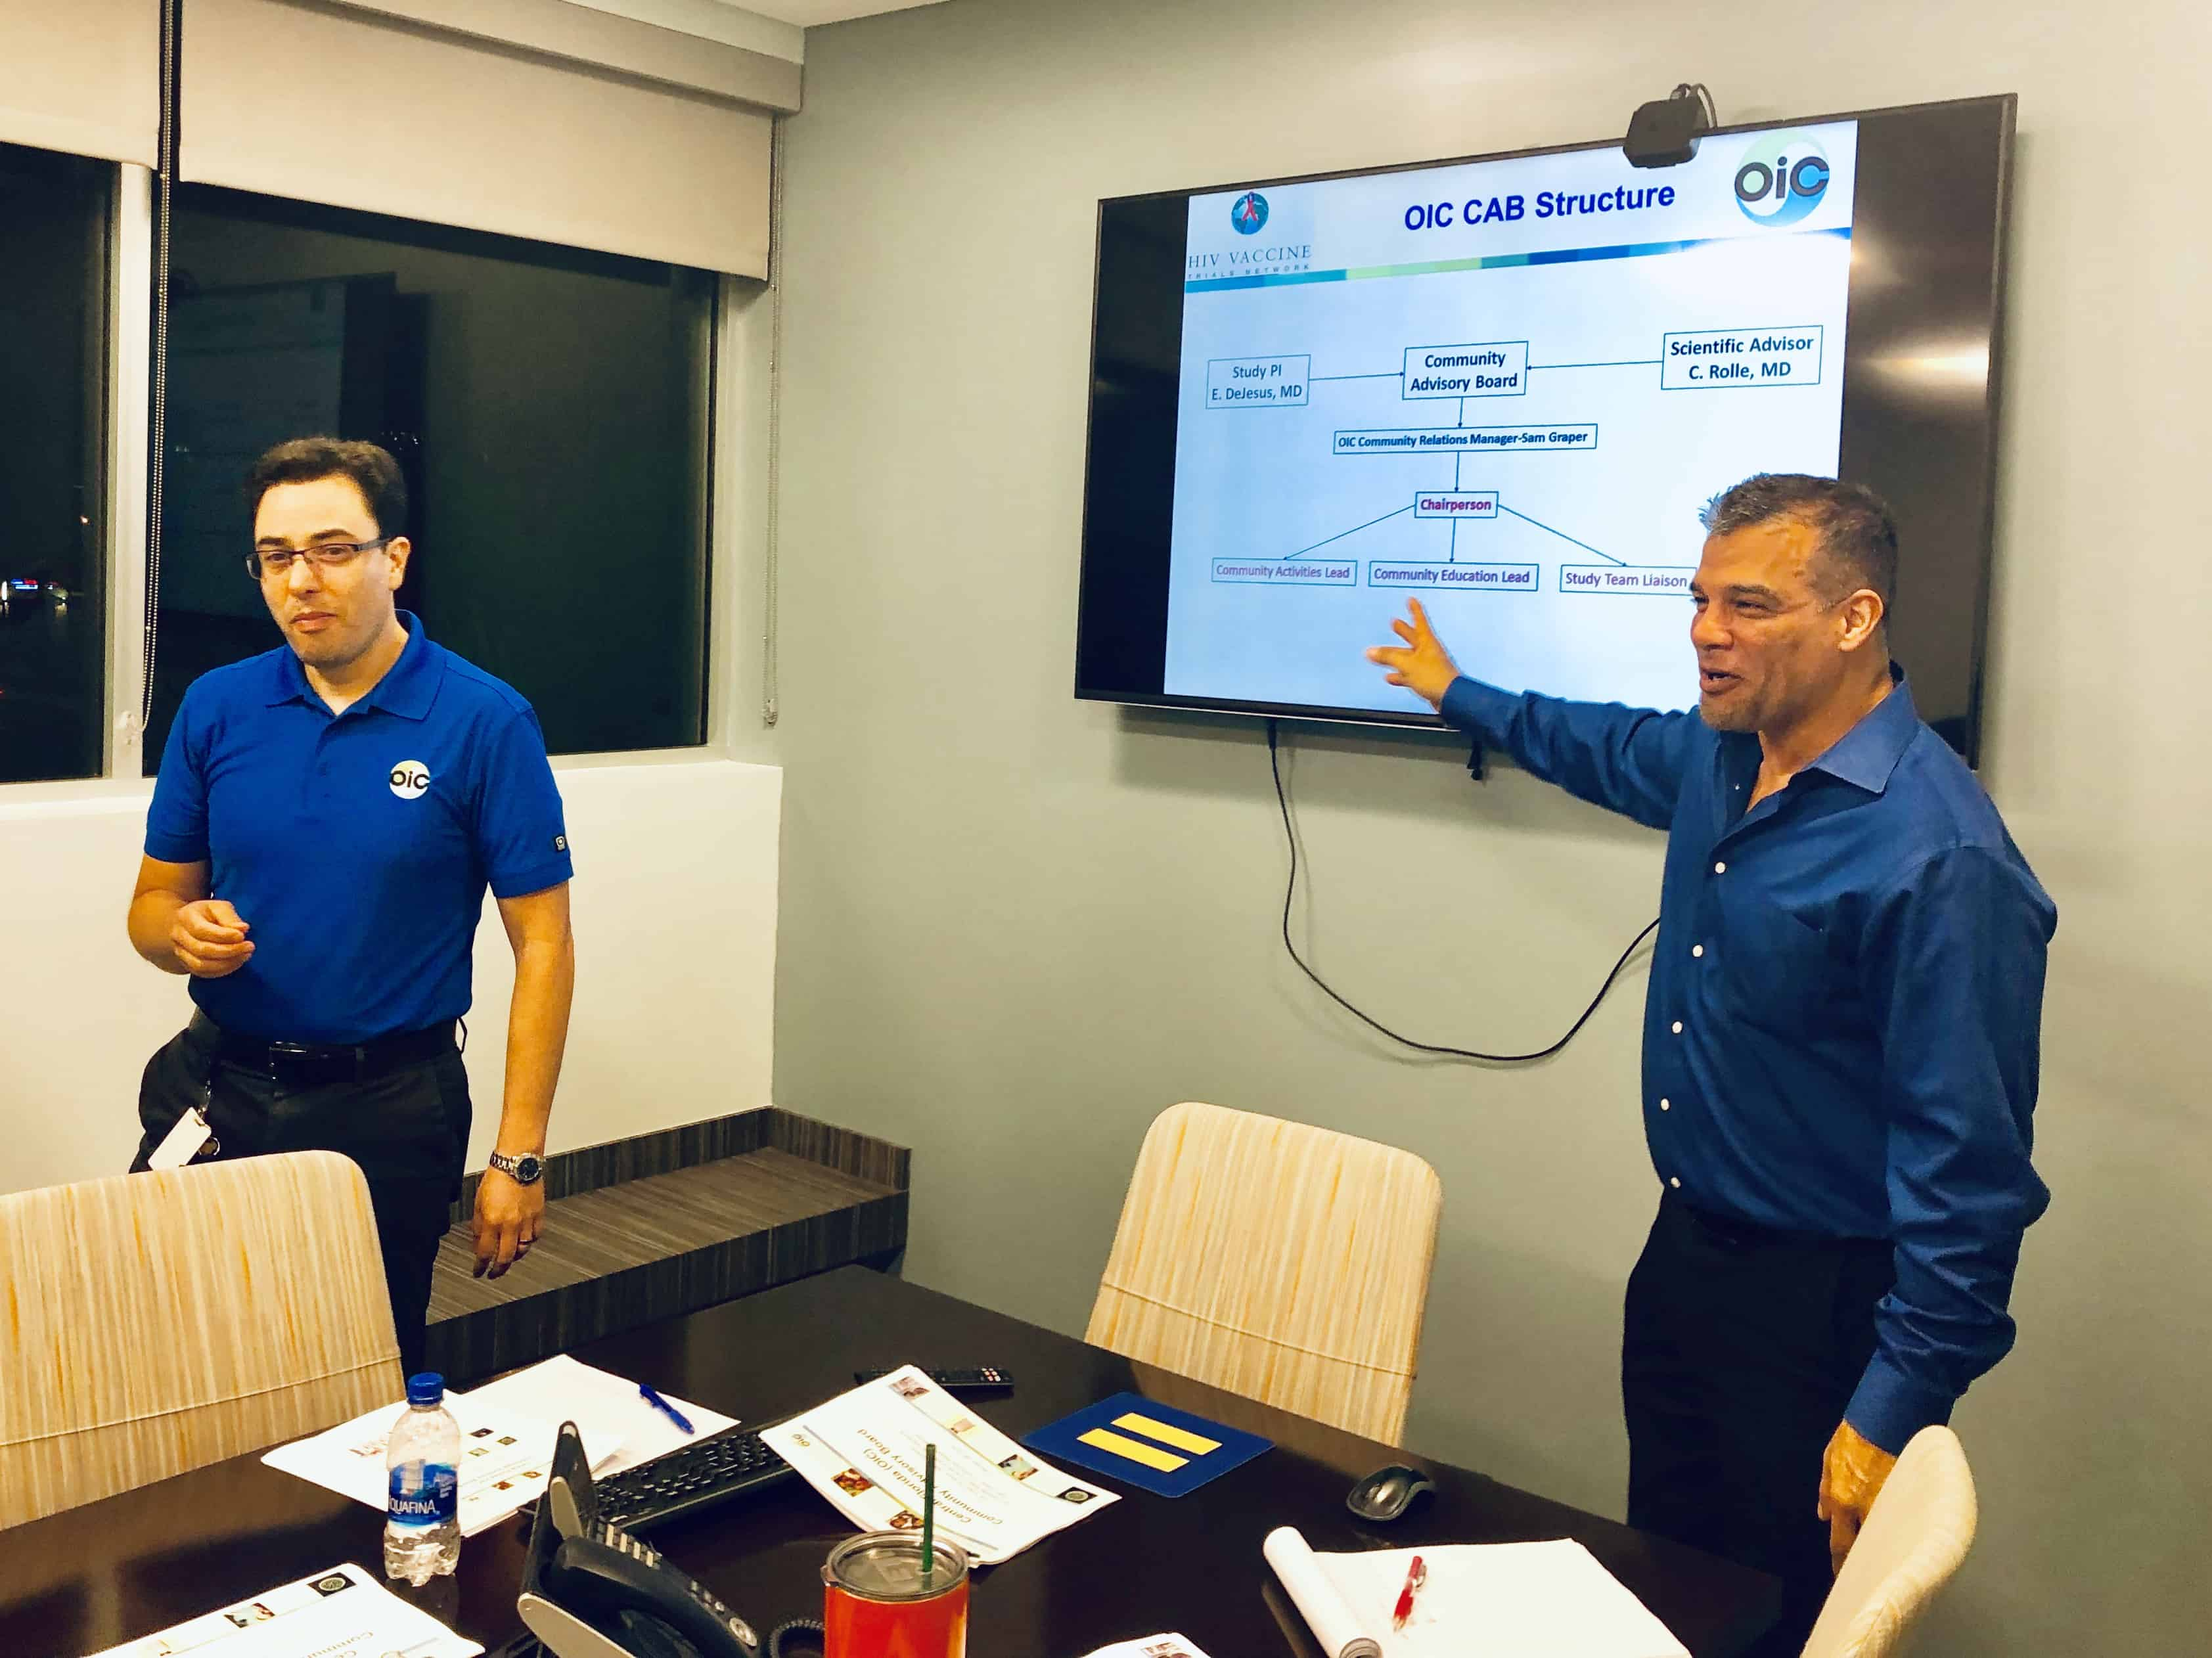 Dr. Edwin DeJesus and Dr. Frederico Hinestrosa discussing the structure of the CAB